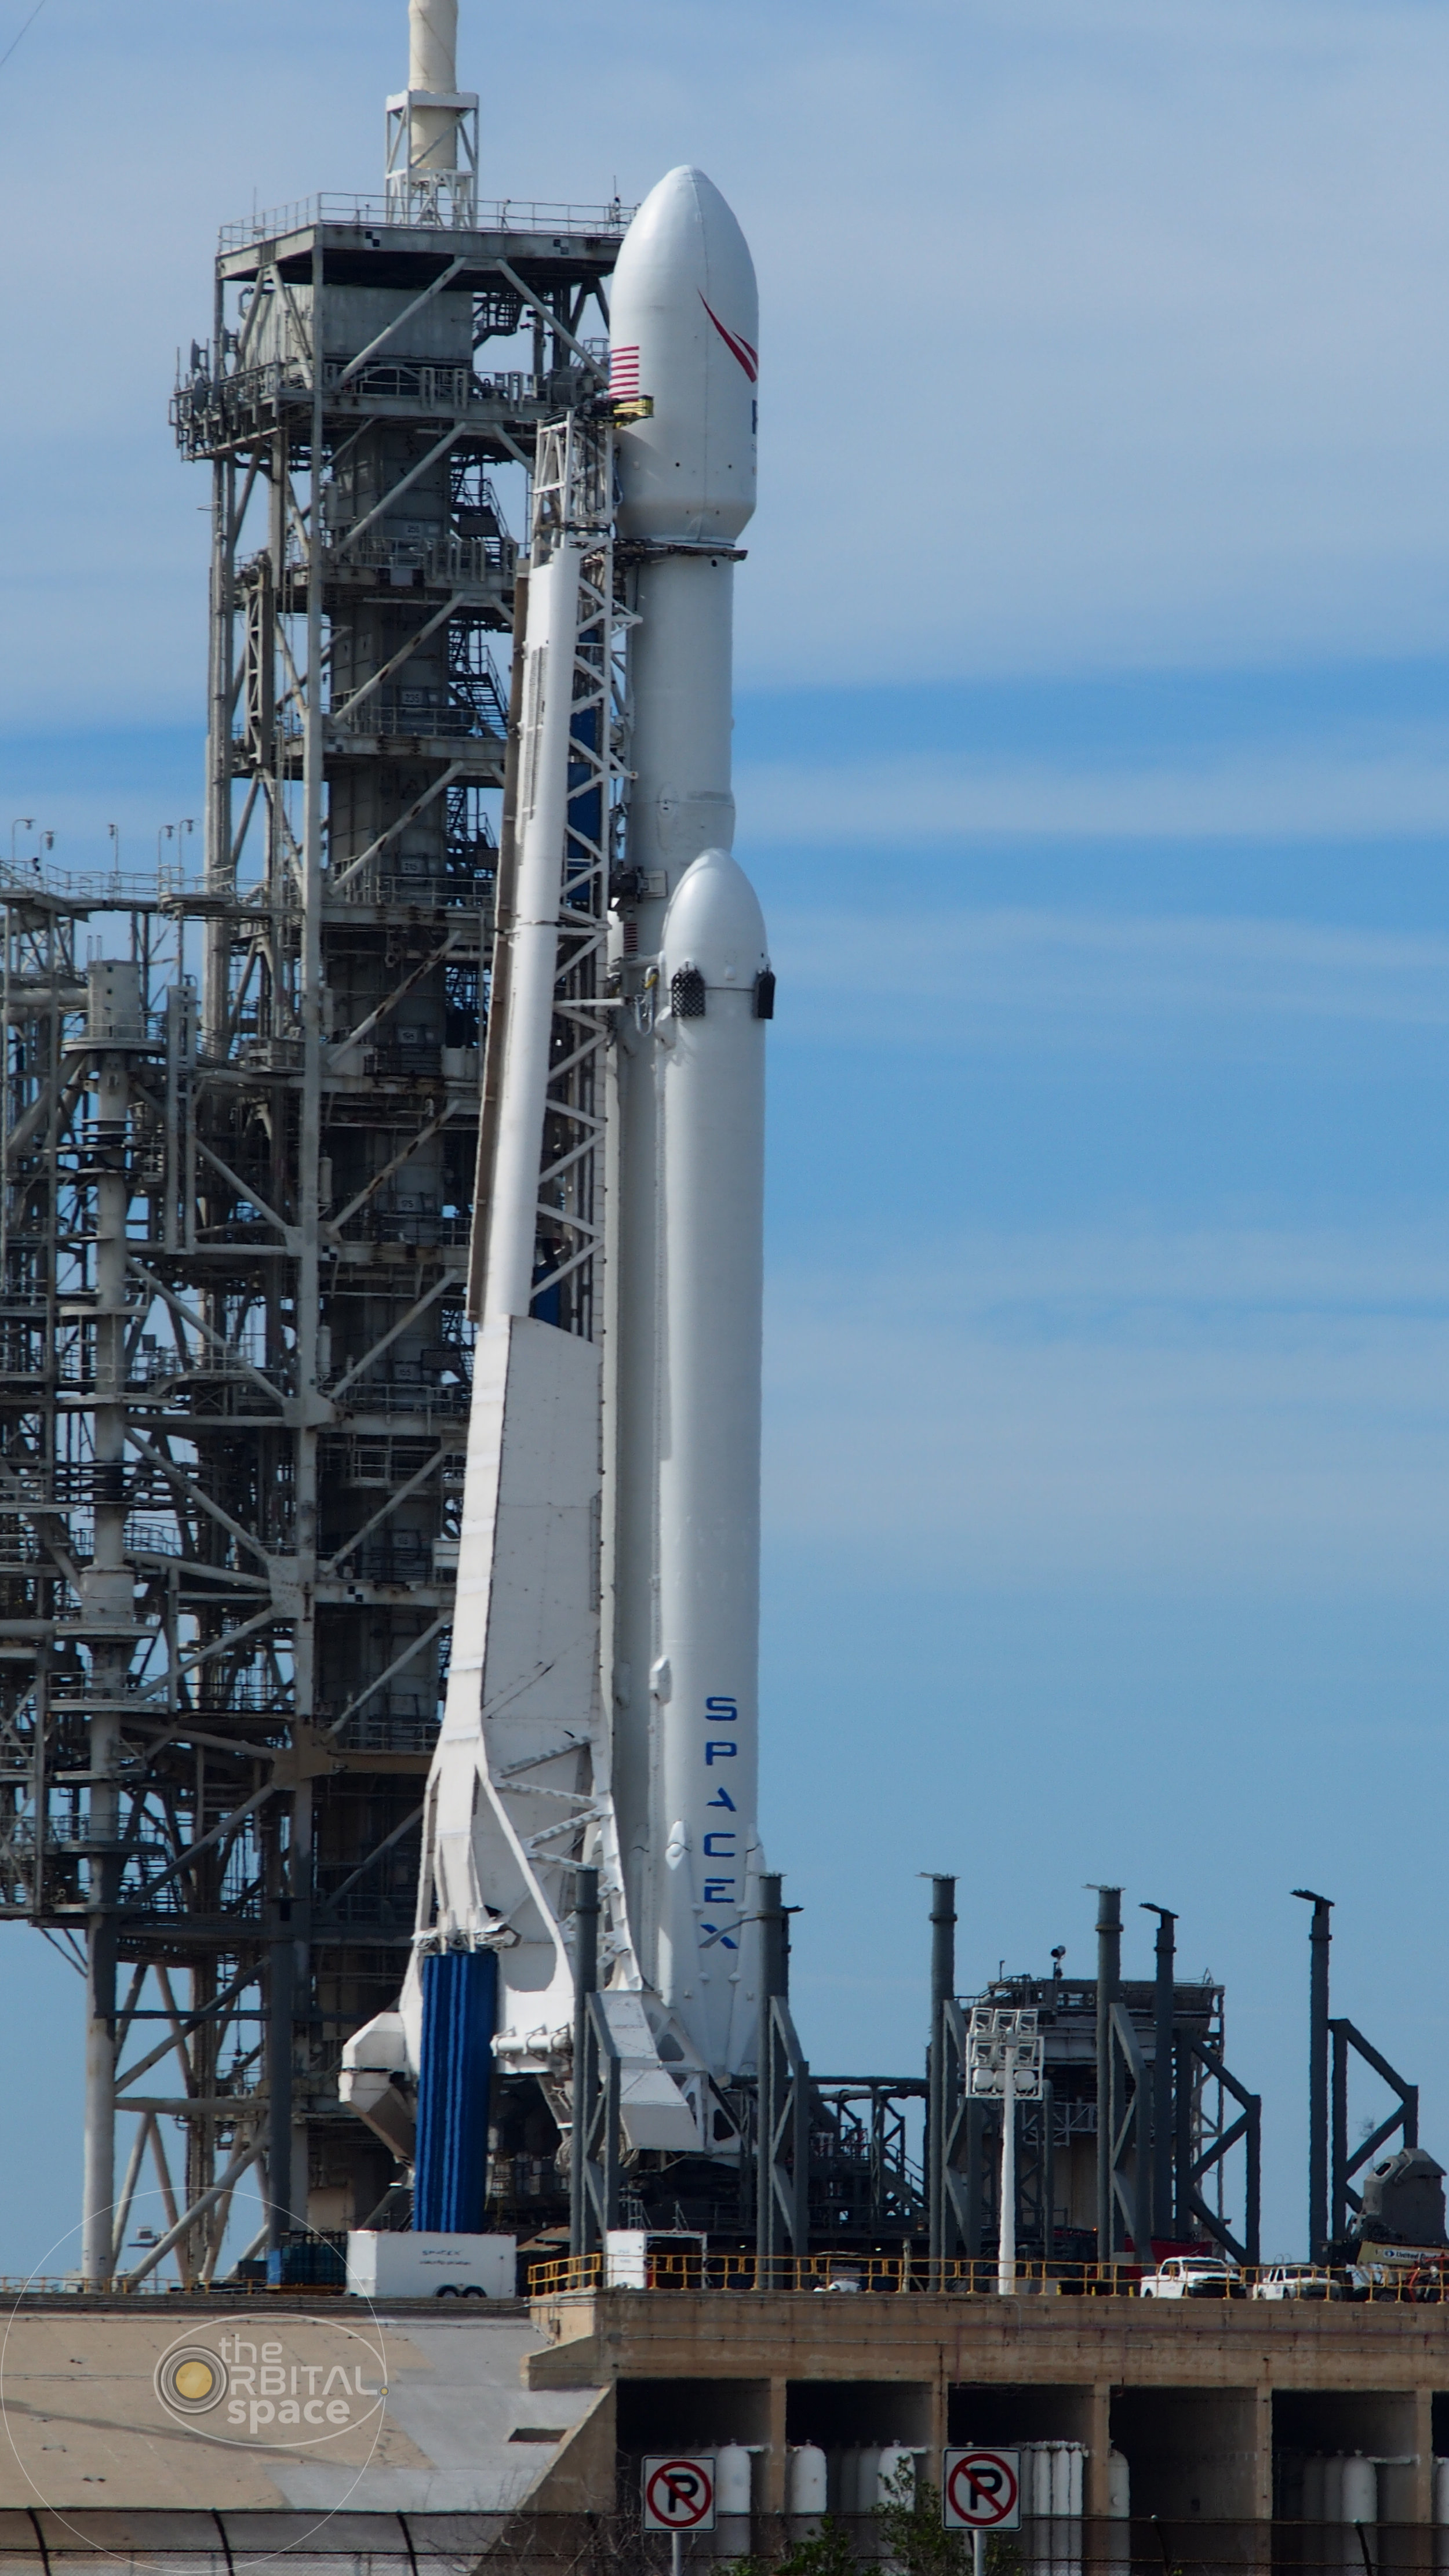 SpaceX's Falcon Heavy at LC-39A